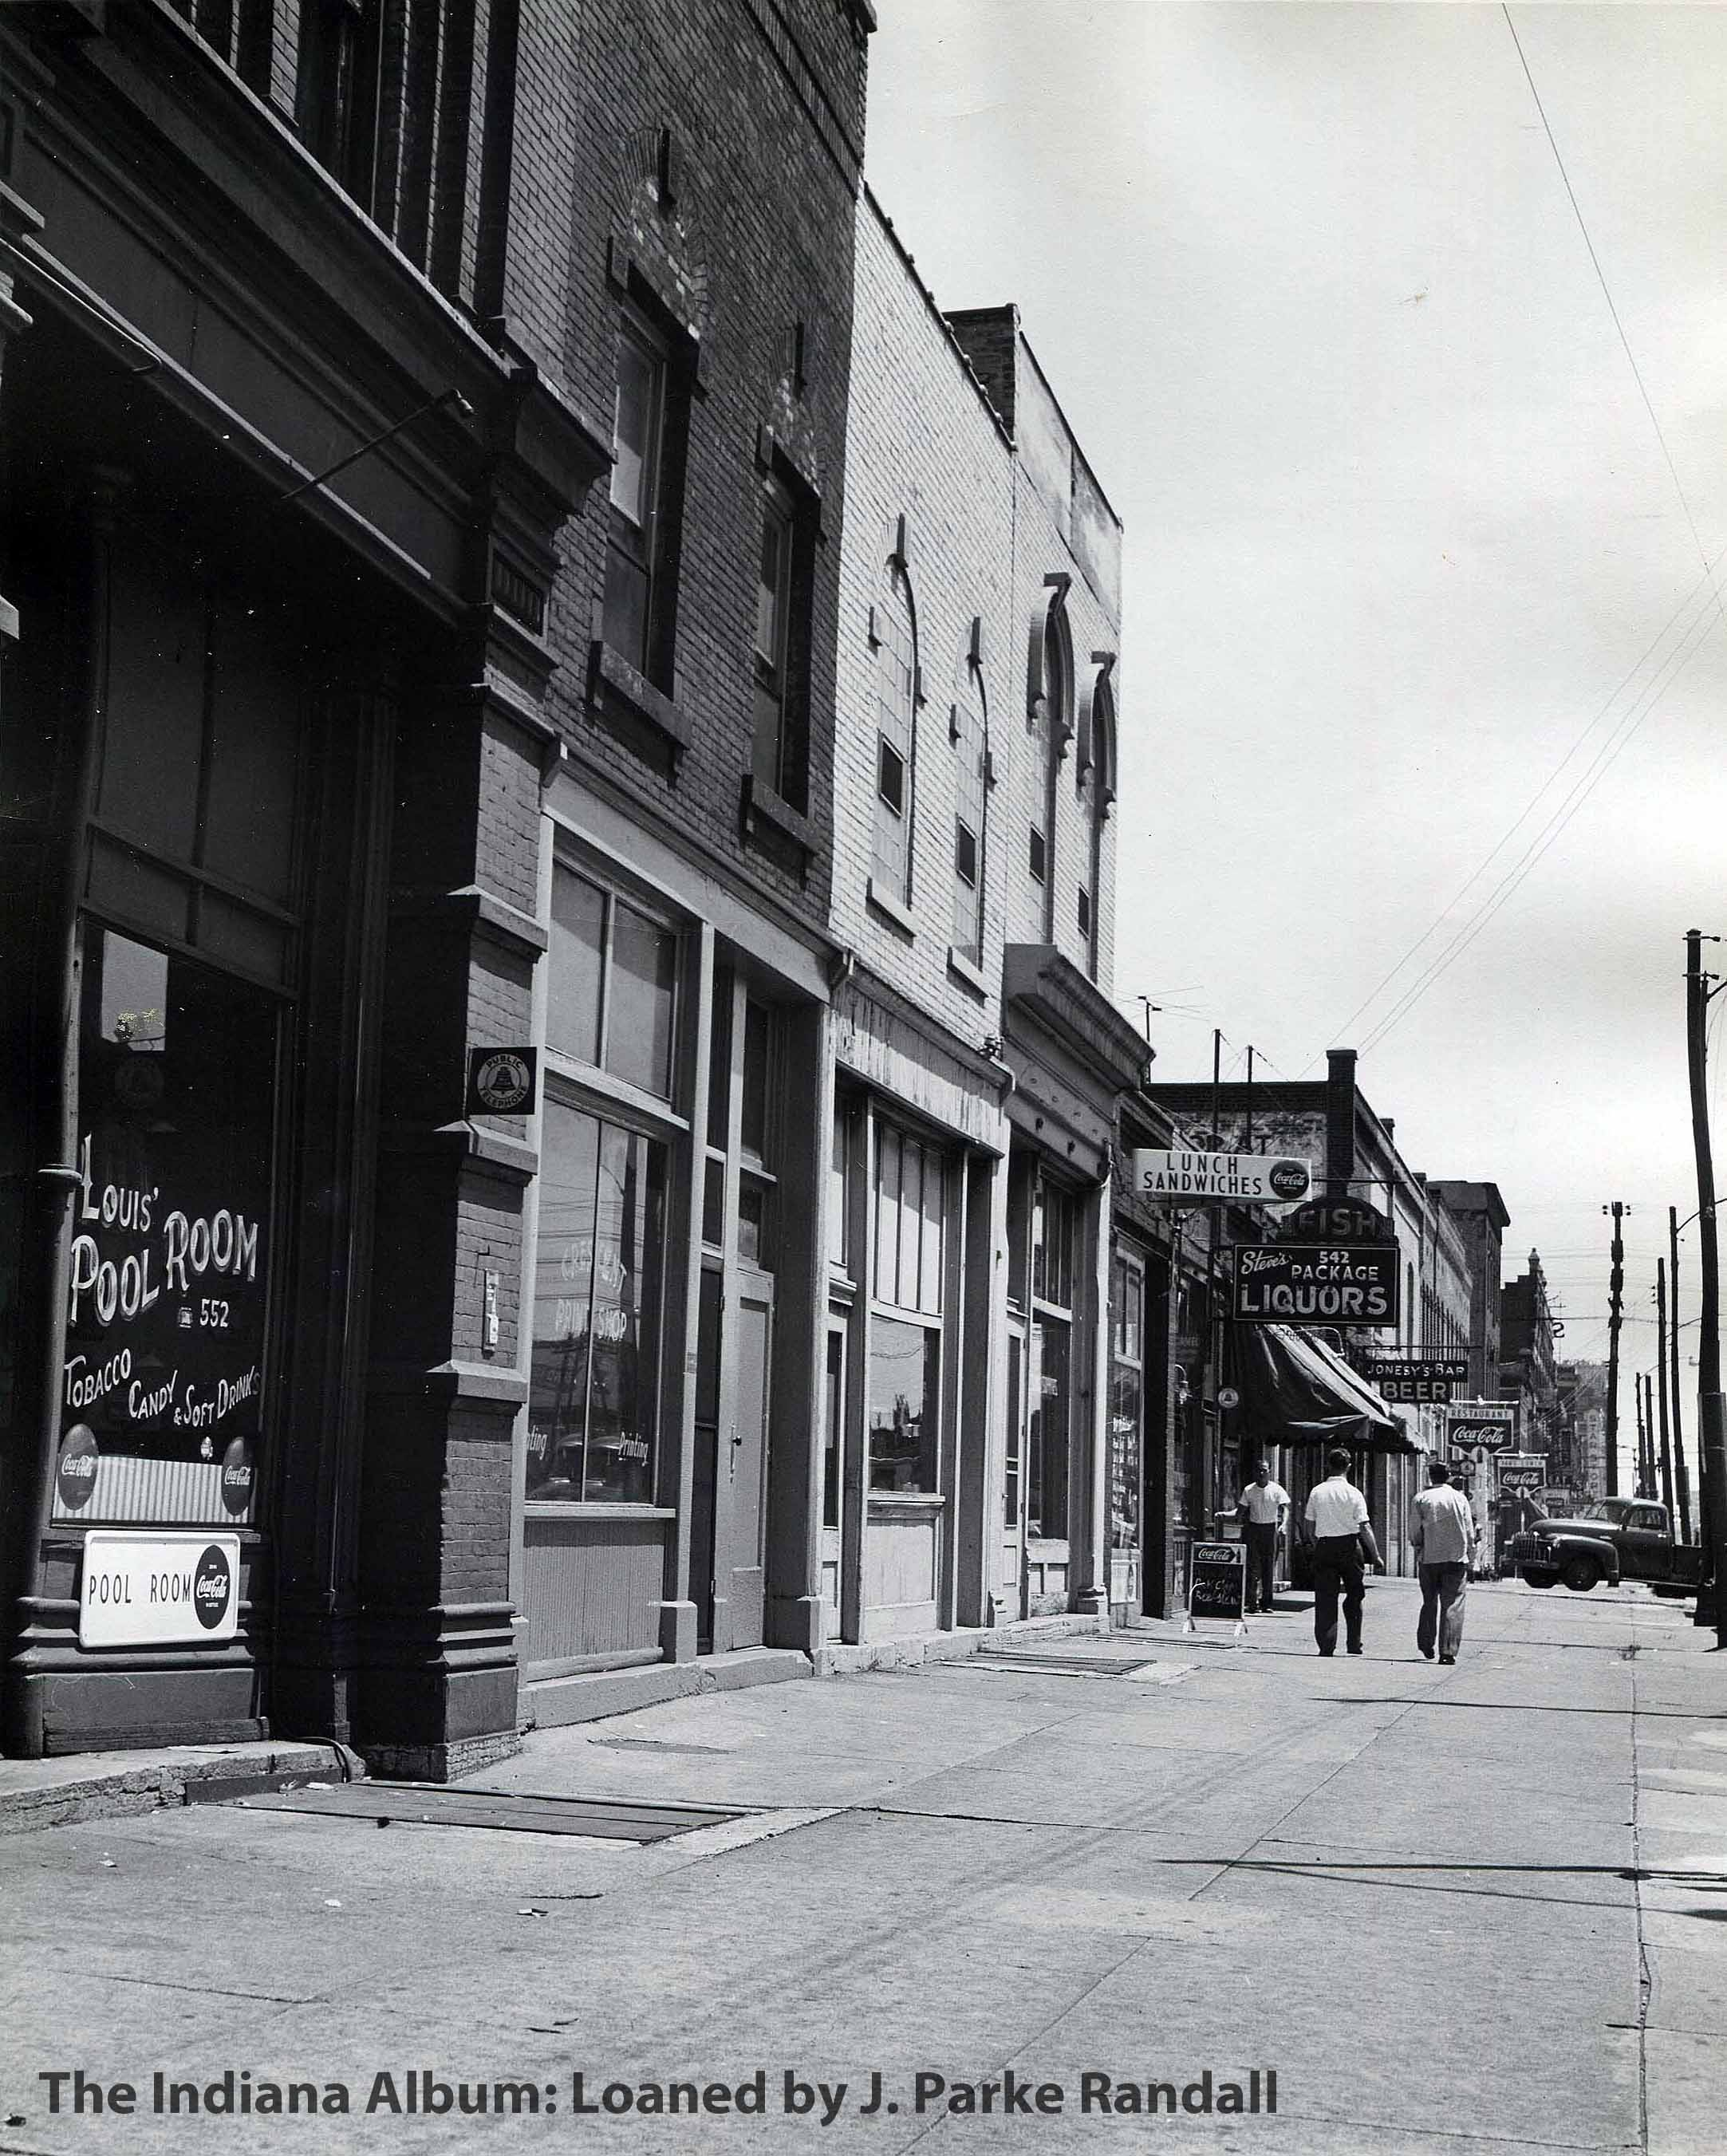 Indianapolis Then and Now: 500 Block of West Washington Street / Eiteljorg Museum